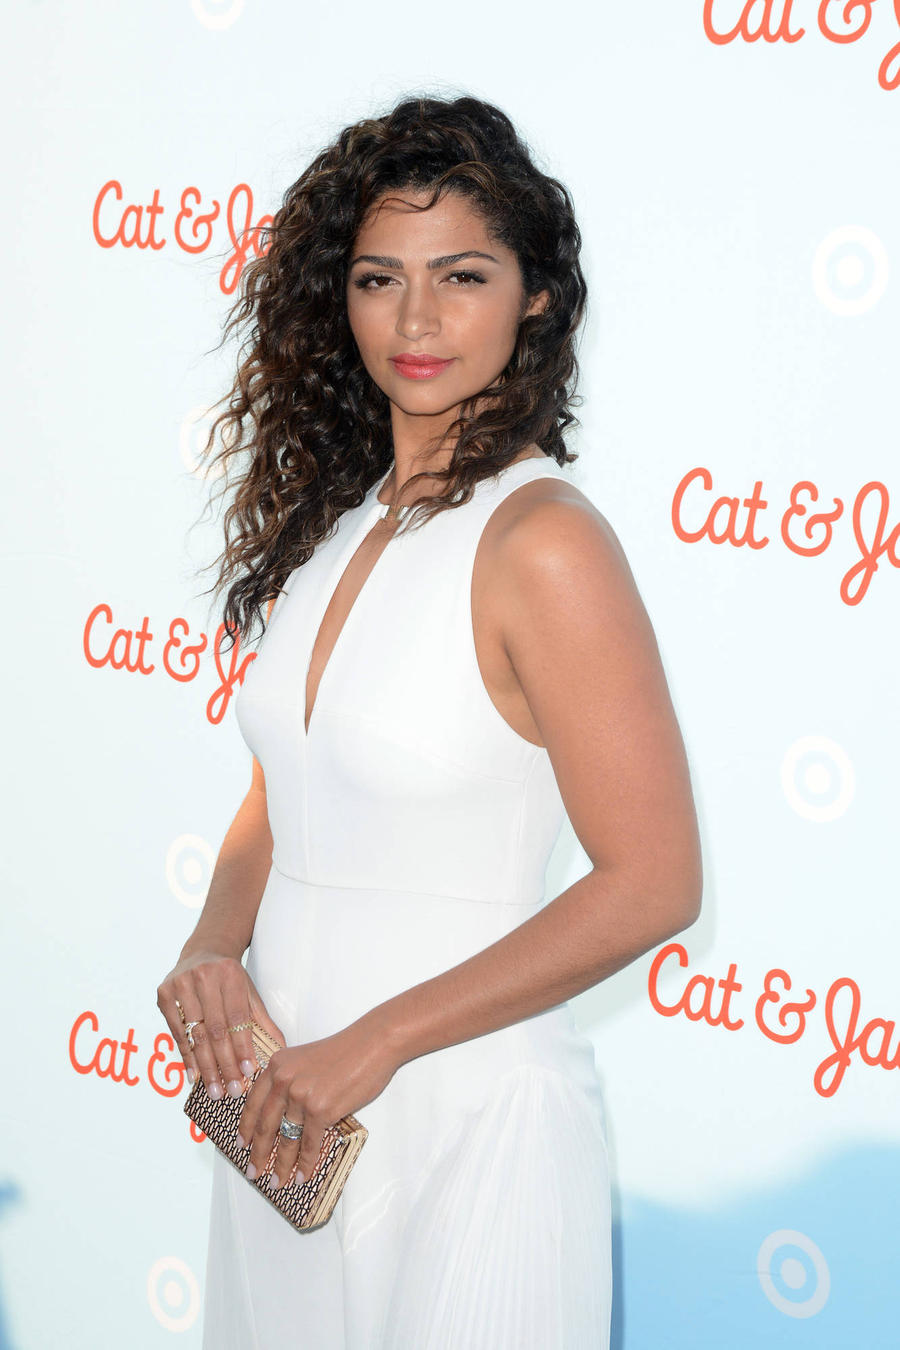 Camila Alves Uses Baby Food To Stay Slim And Toned